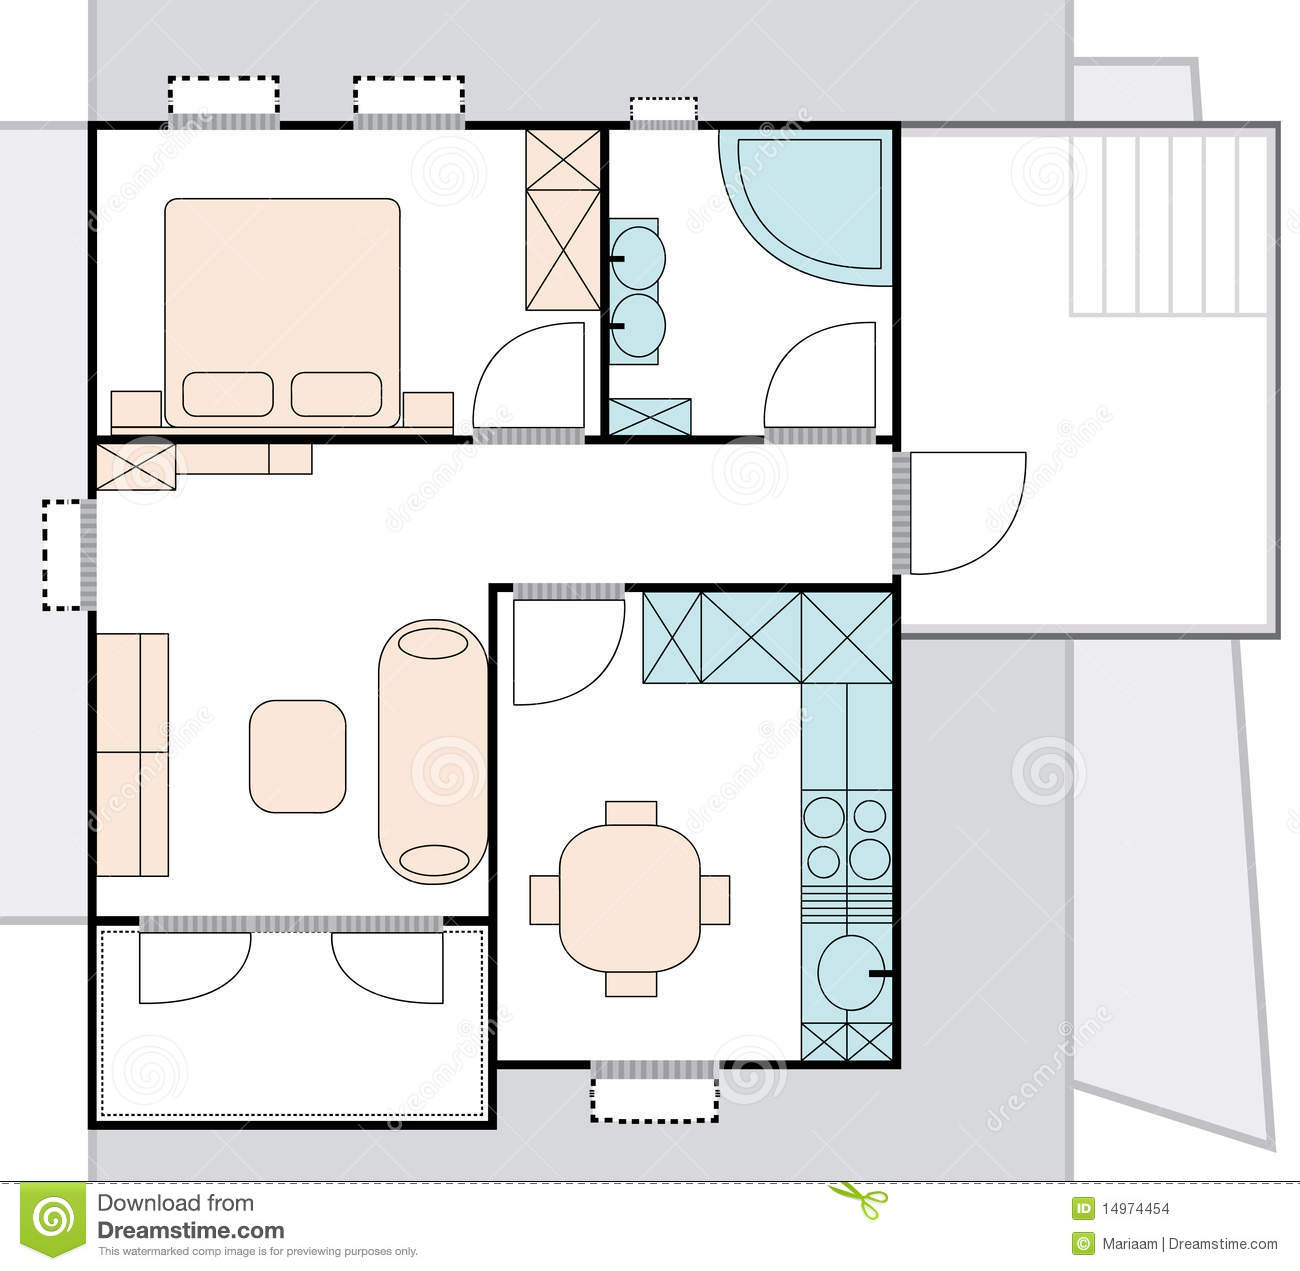 Plan d 39 architecture d 39 appartement illustration stock for Architecture de plan libre